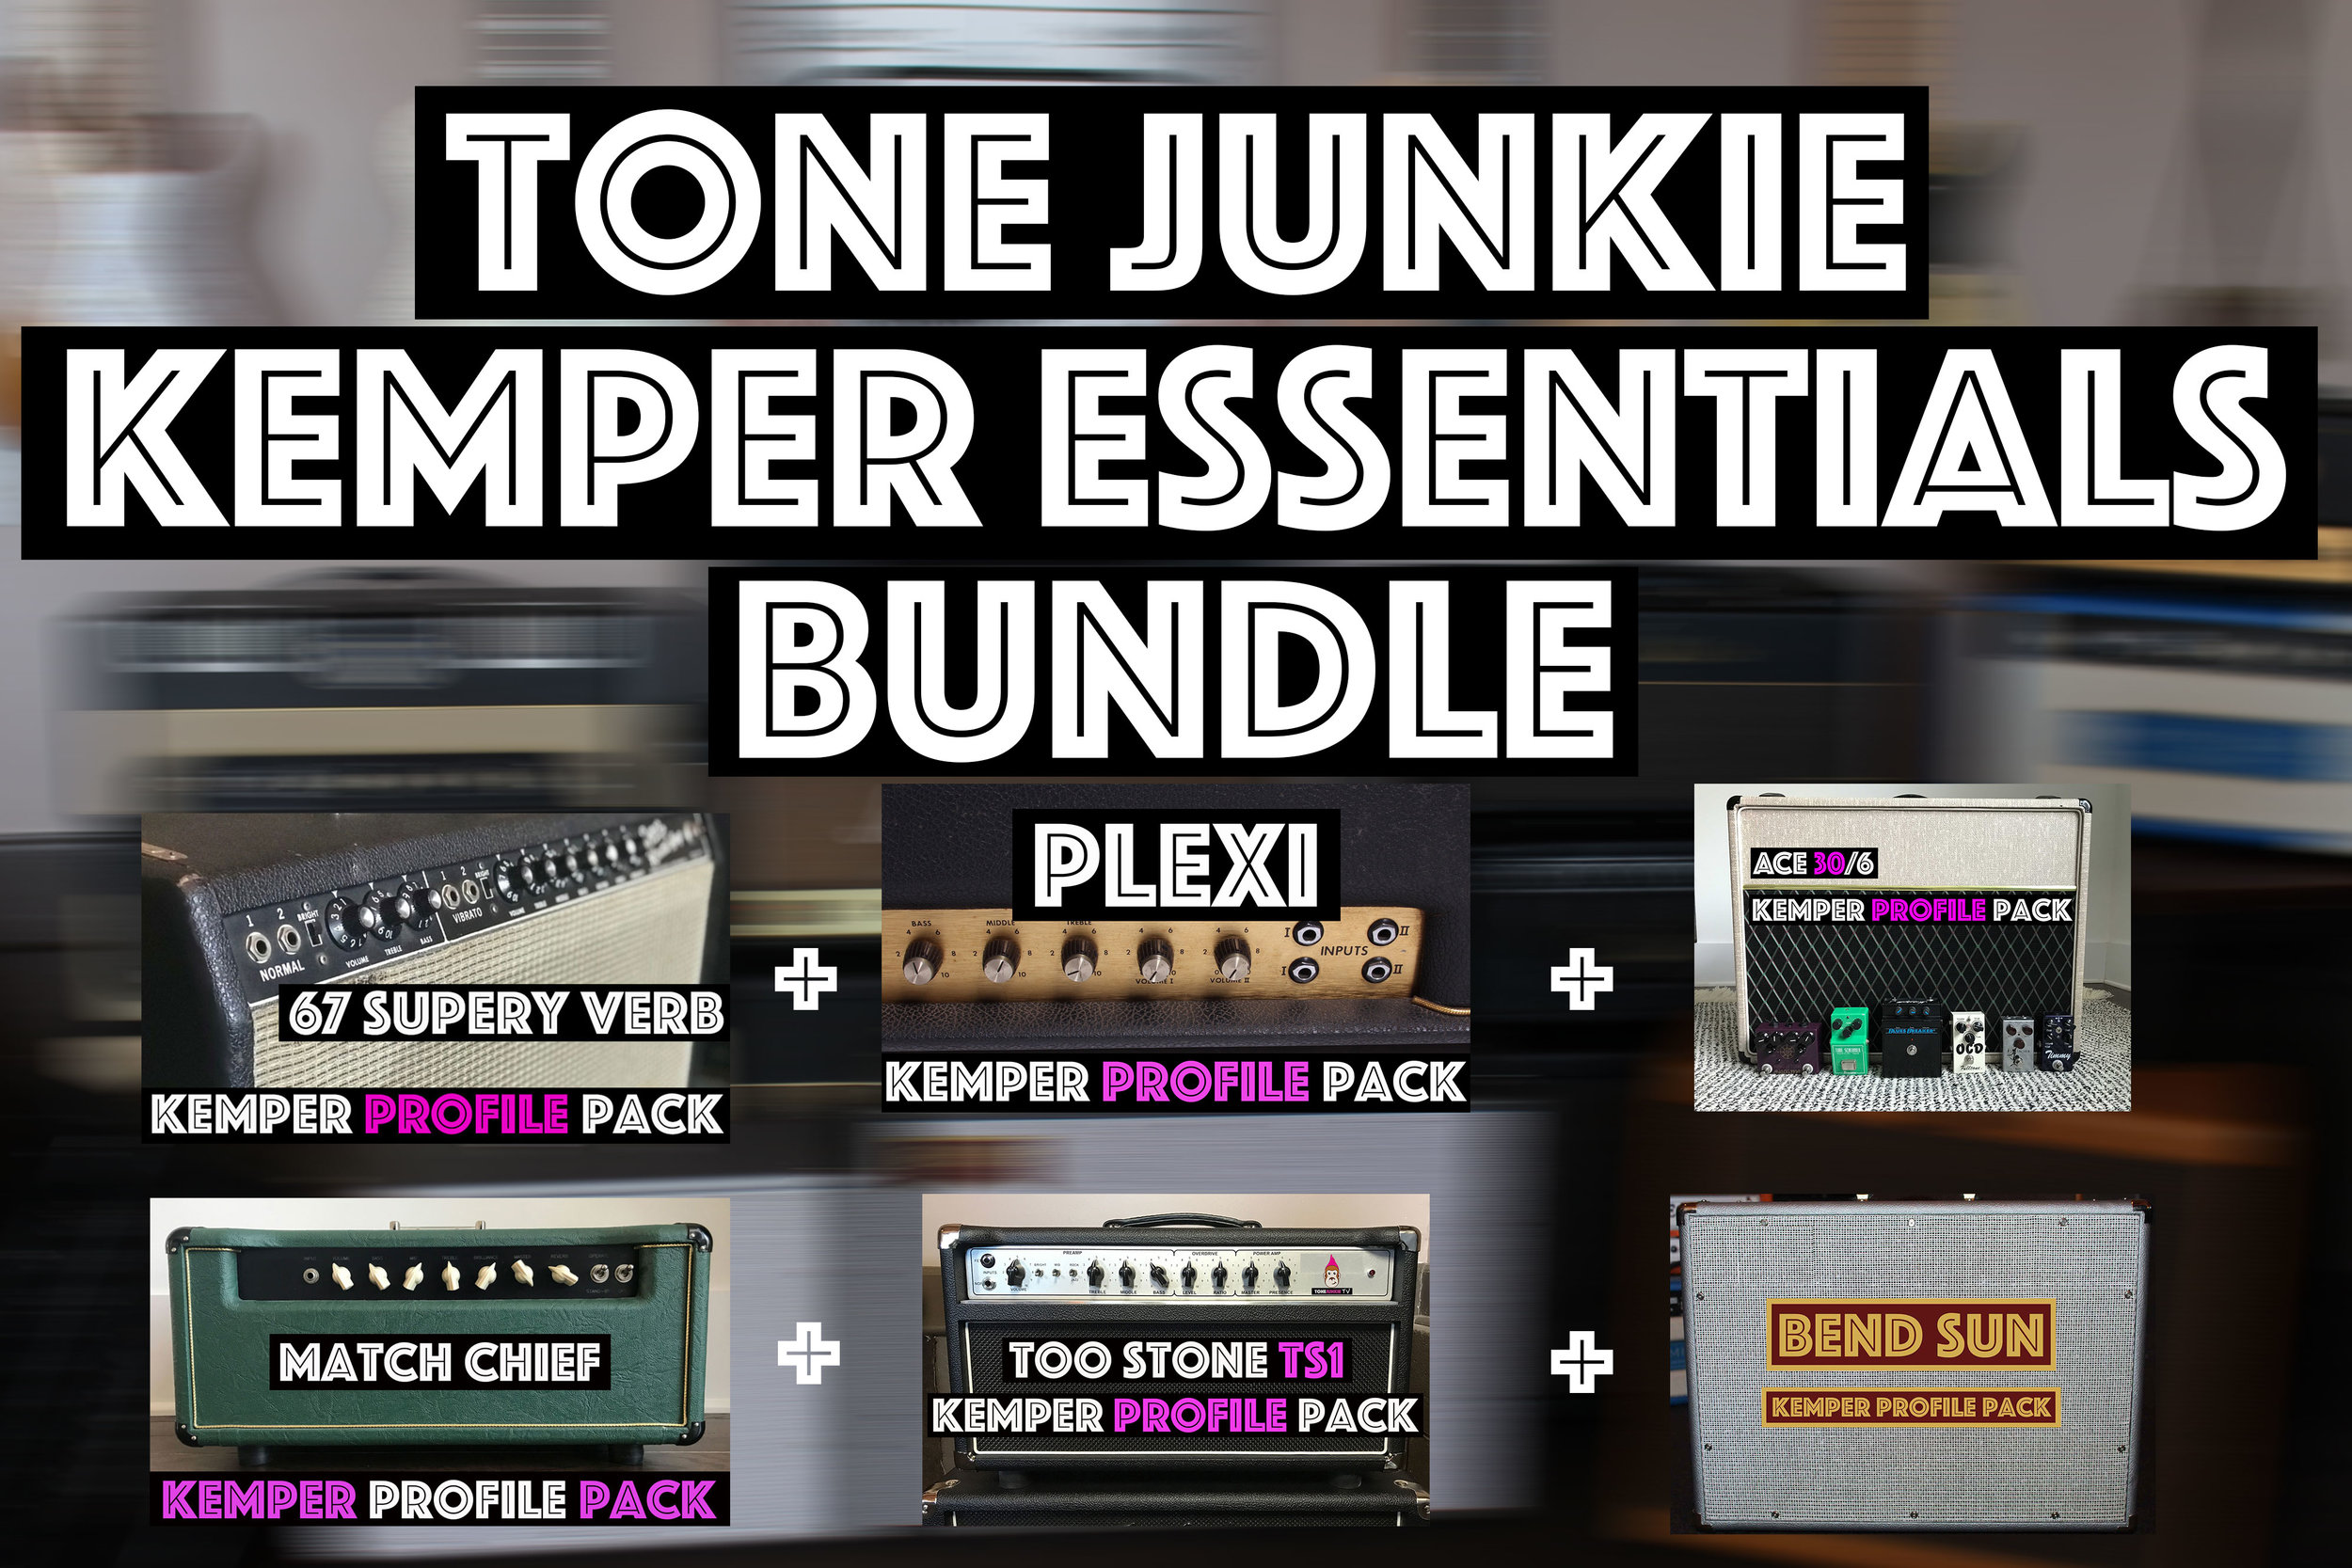 Essential Tones! - If you are looking for the absolute essential tones for your Kemper, this pack is for you. If you are new to Tone Junkie Profiles or the Kemper in general, this is a great bundle to start with. 67 Super reverb will cover all the classic American tones you're looking for while the ACE30/6 will cover British clean and chime. The Plexi pack goes from Hendrix to…